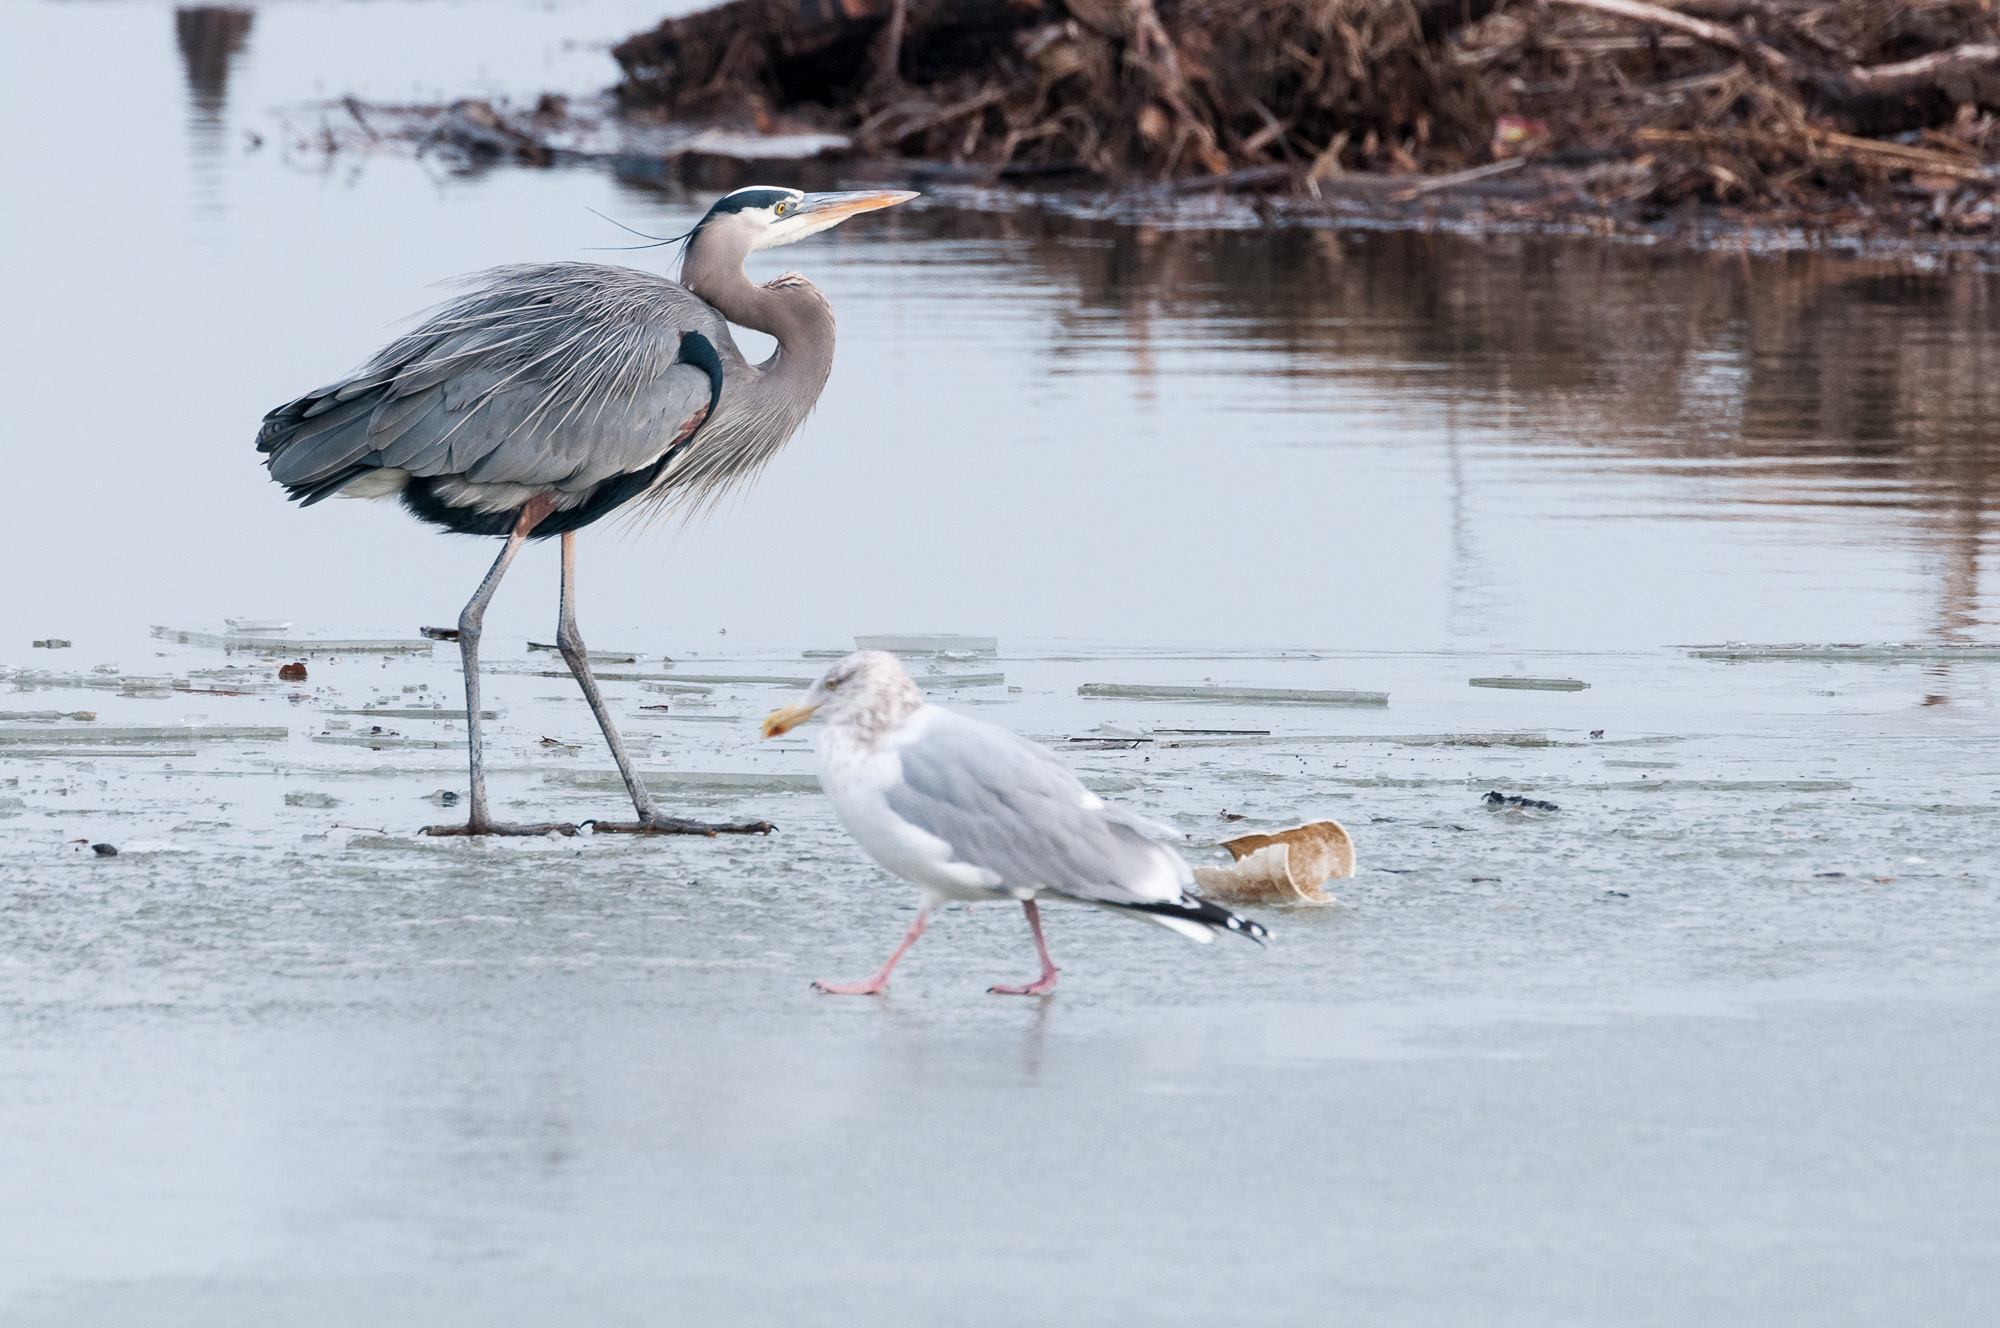 Crossing paths, the Great Blue Heron returns to its island, the Herring Gull returns to its fish